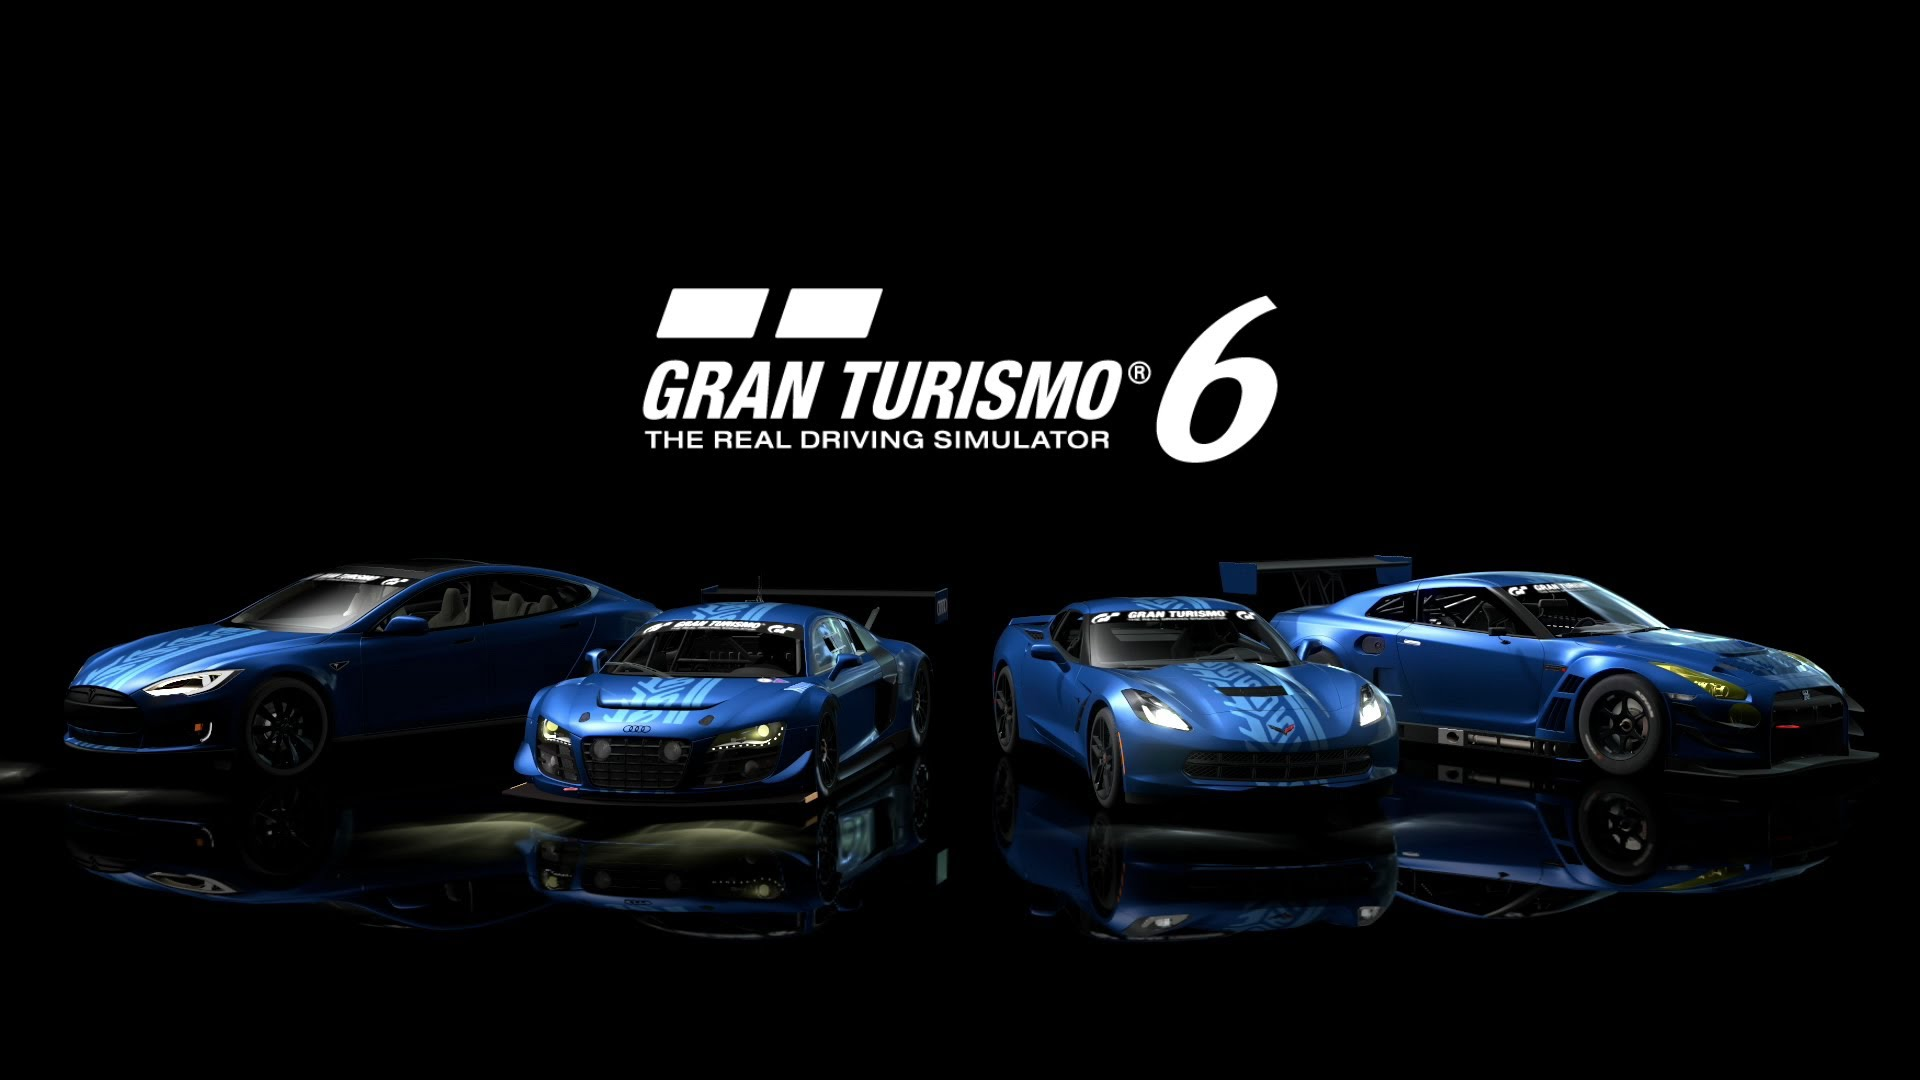 gran turismo 6 new trailer and release date capsule computers. Black Bedroom Furniture Sets. Home Design Ideas